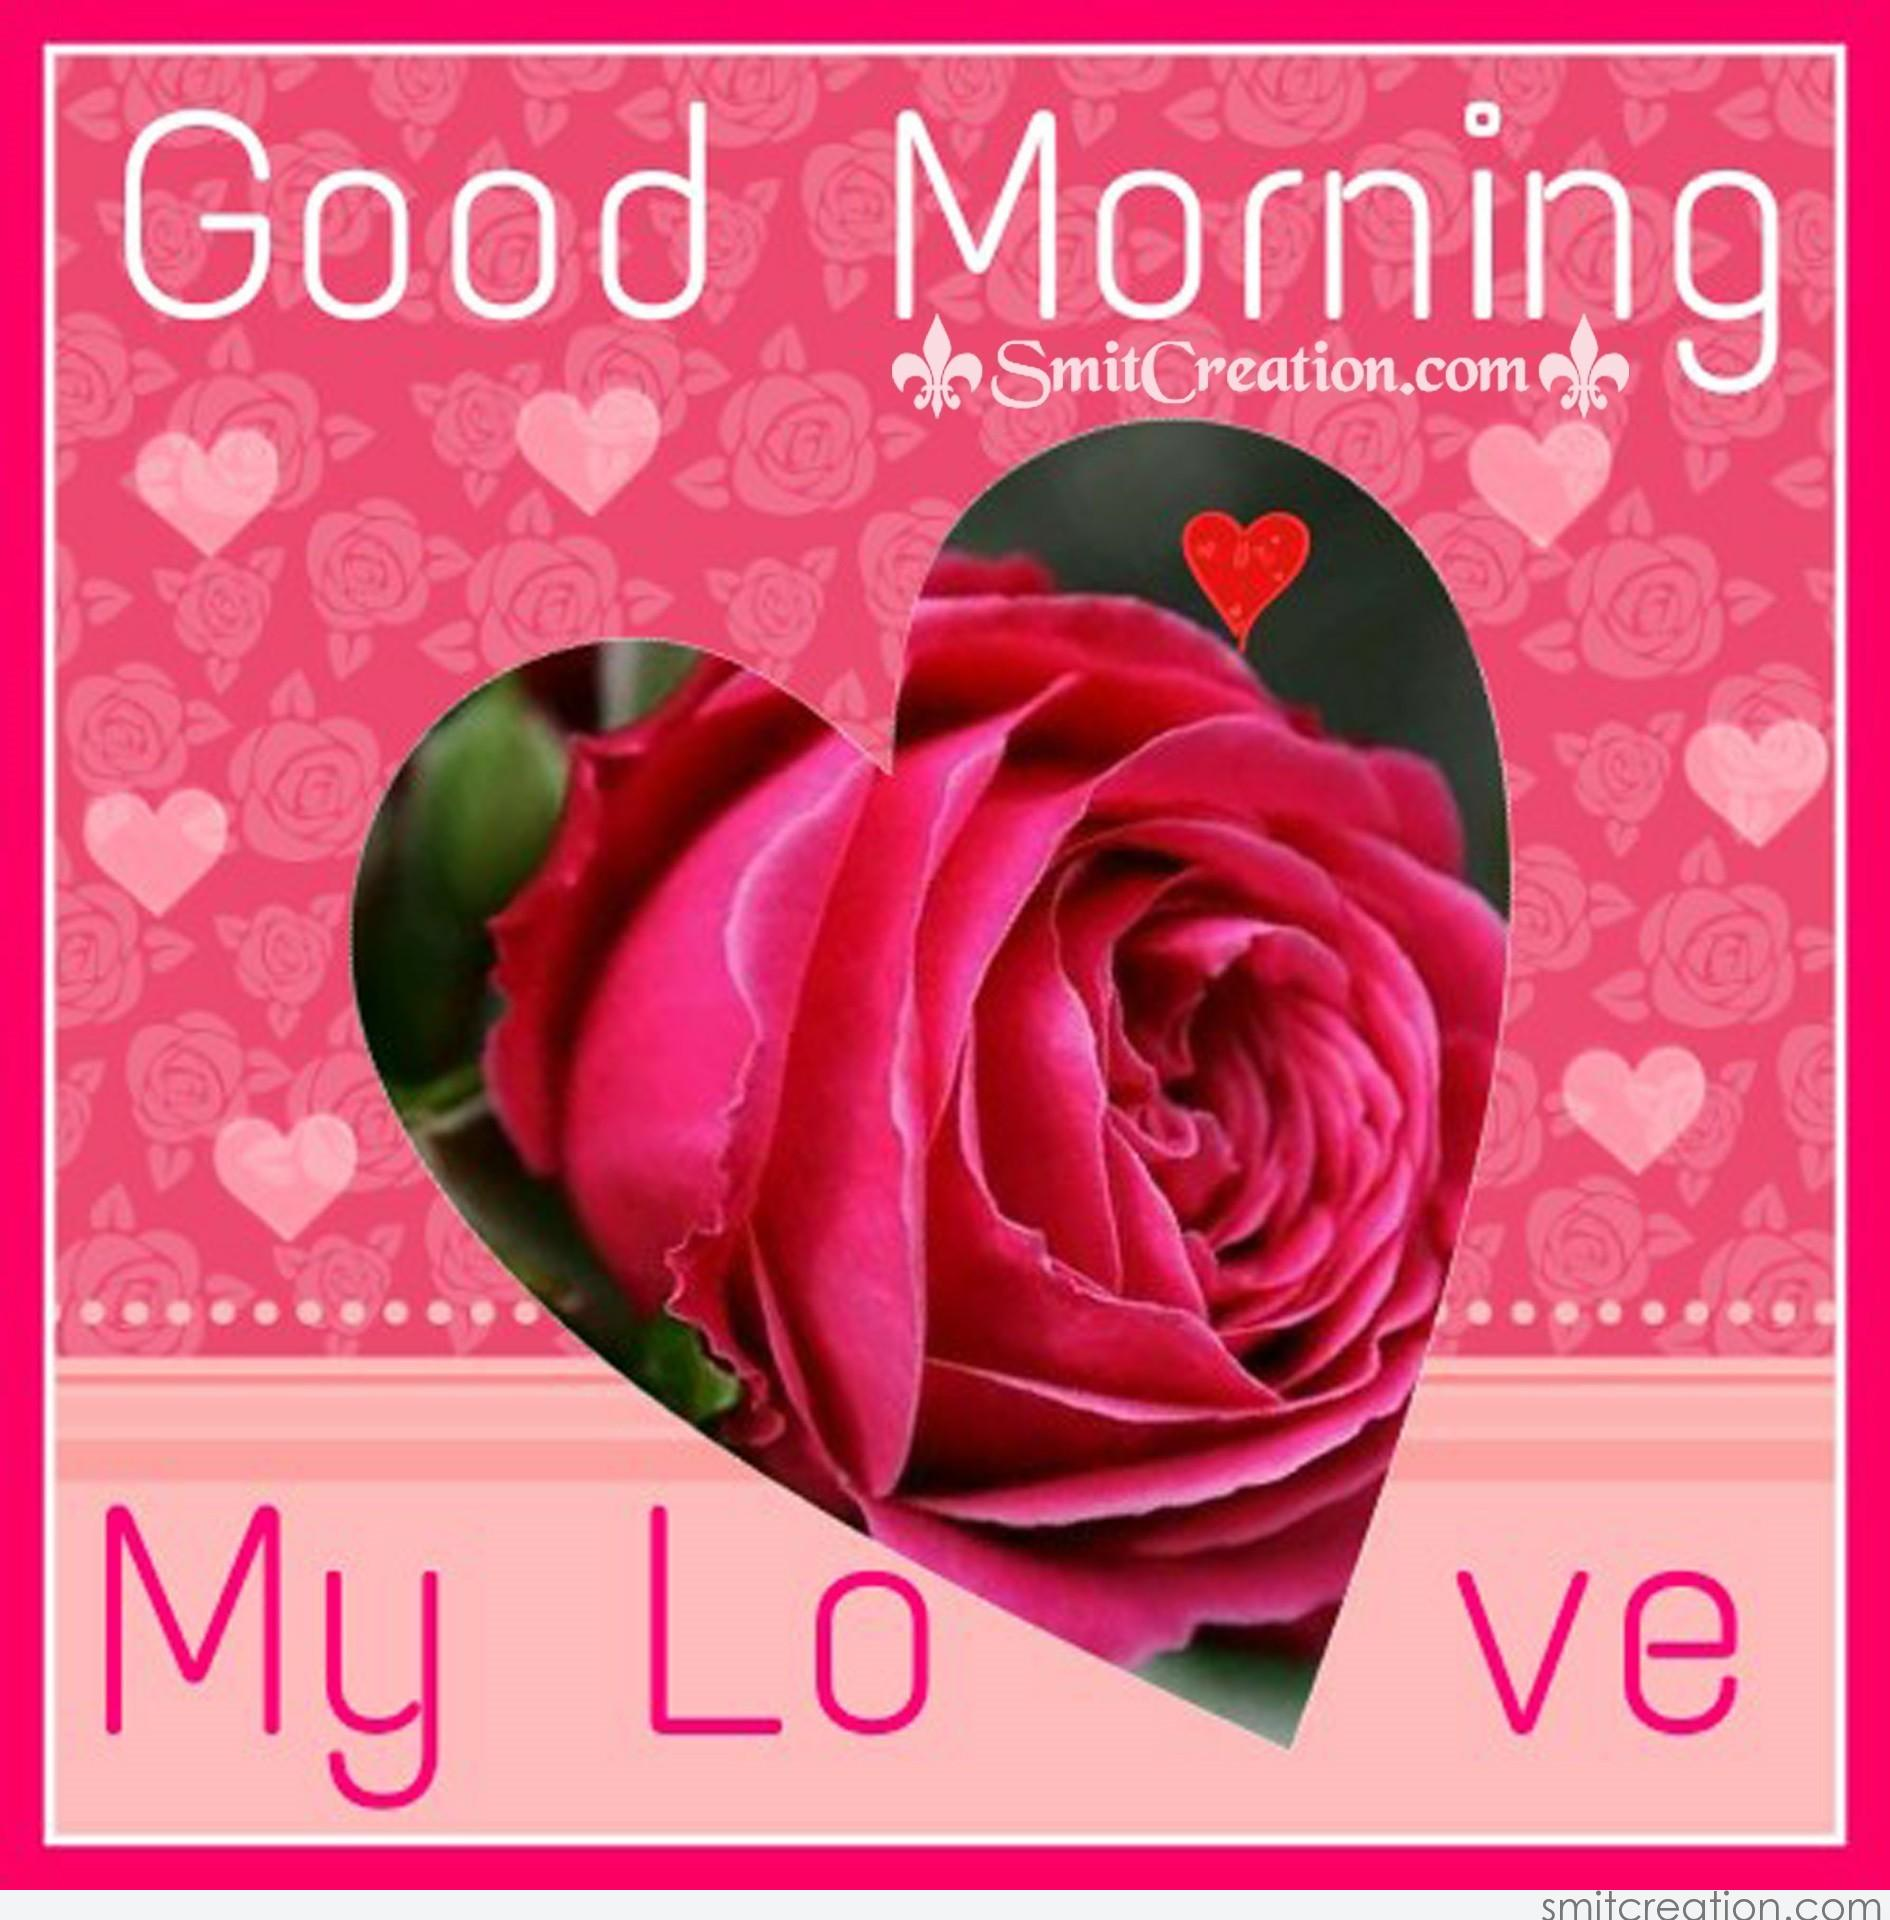 Good Morning My Love Images : Good morning my love smitcreation